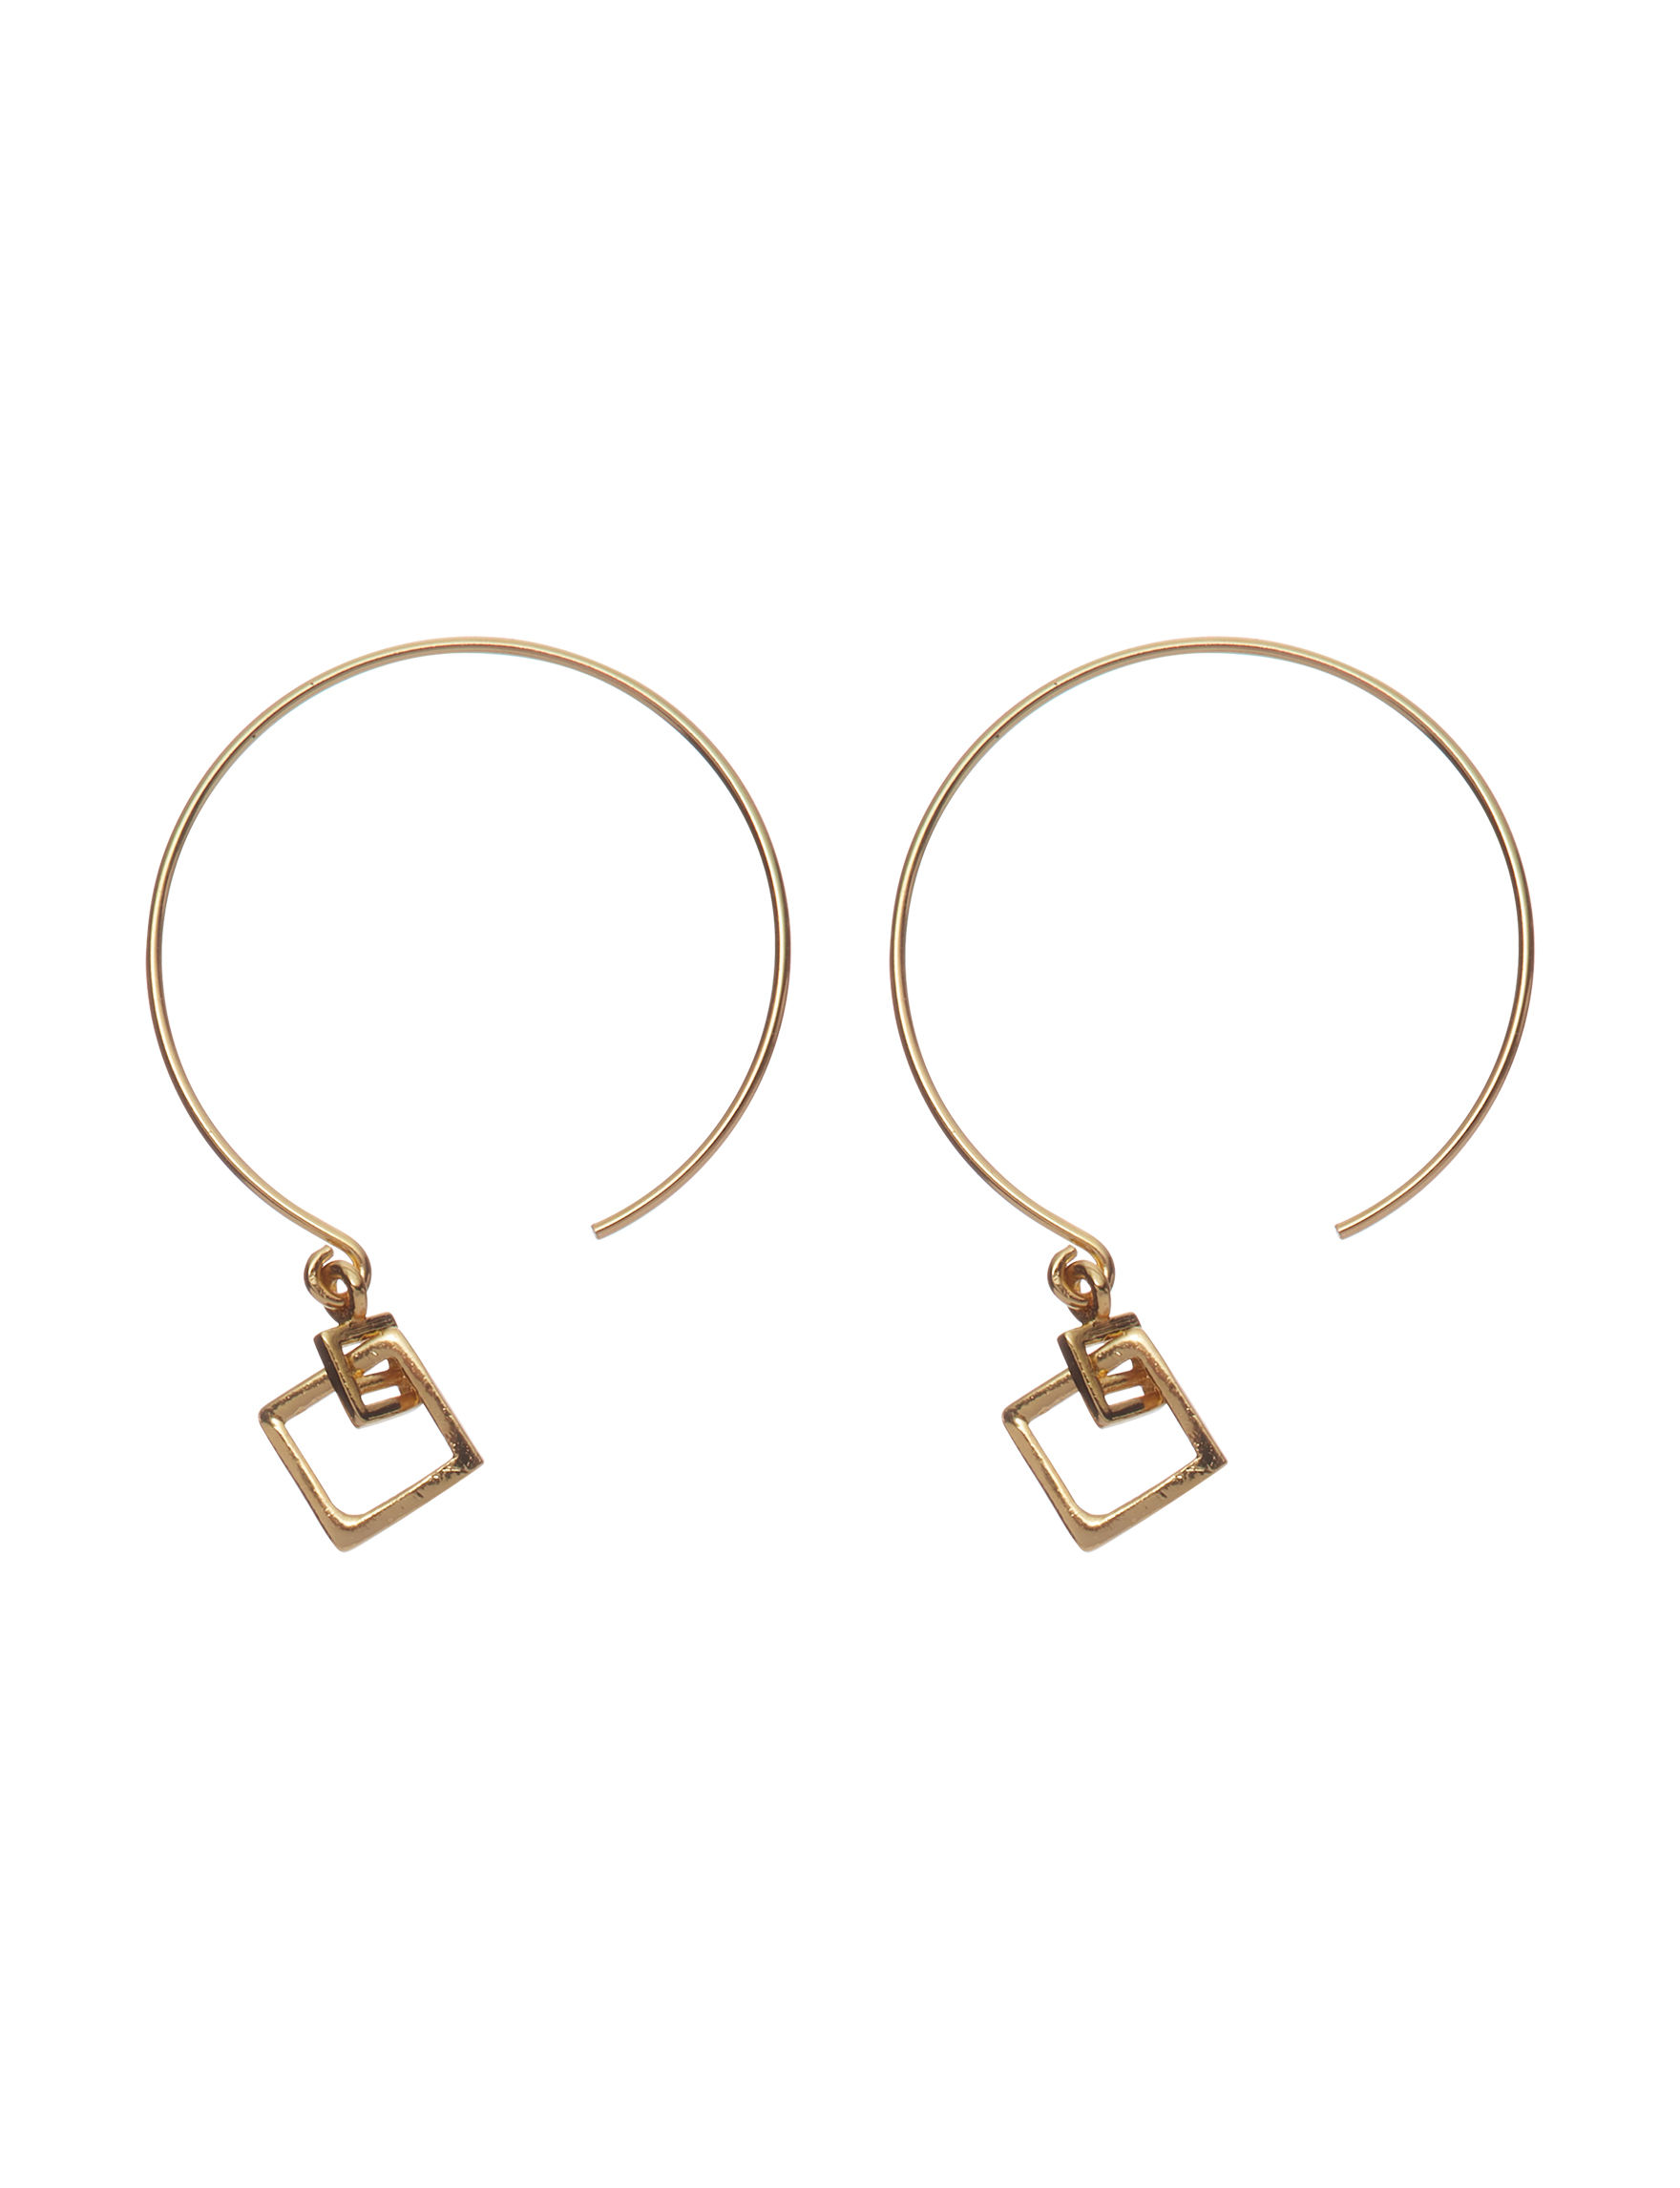 Marsala Gold Hoops Earrings Fine Jewelry